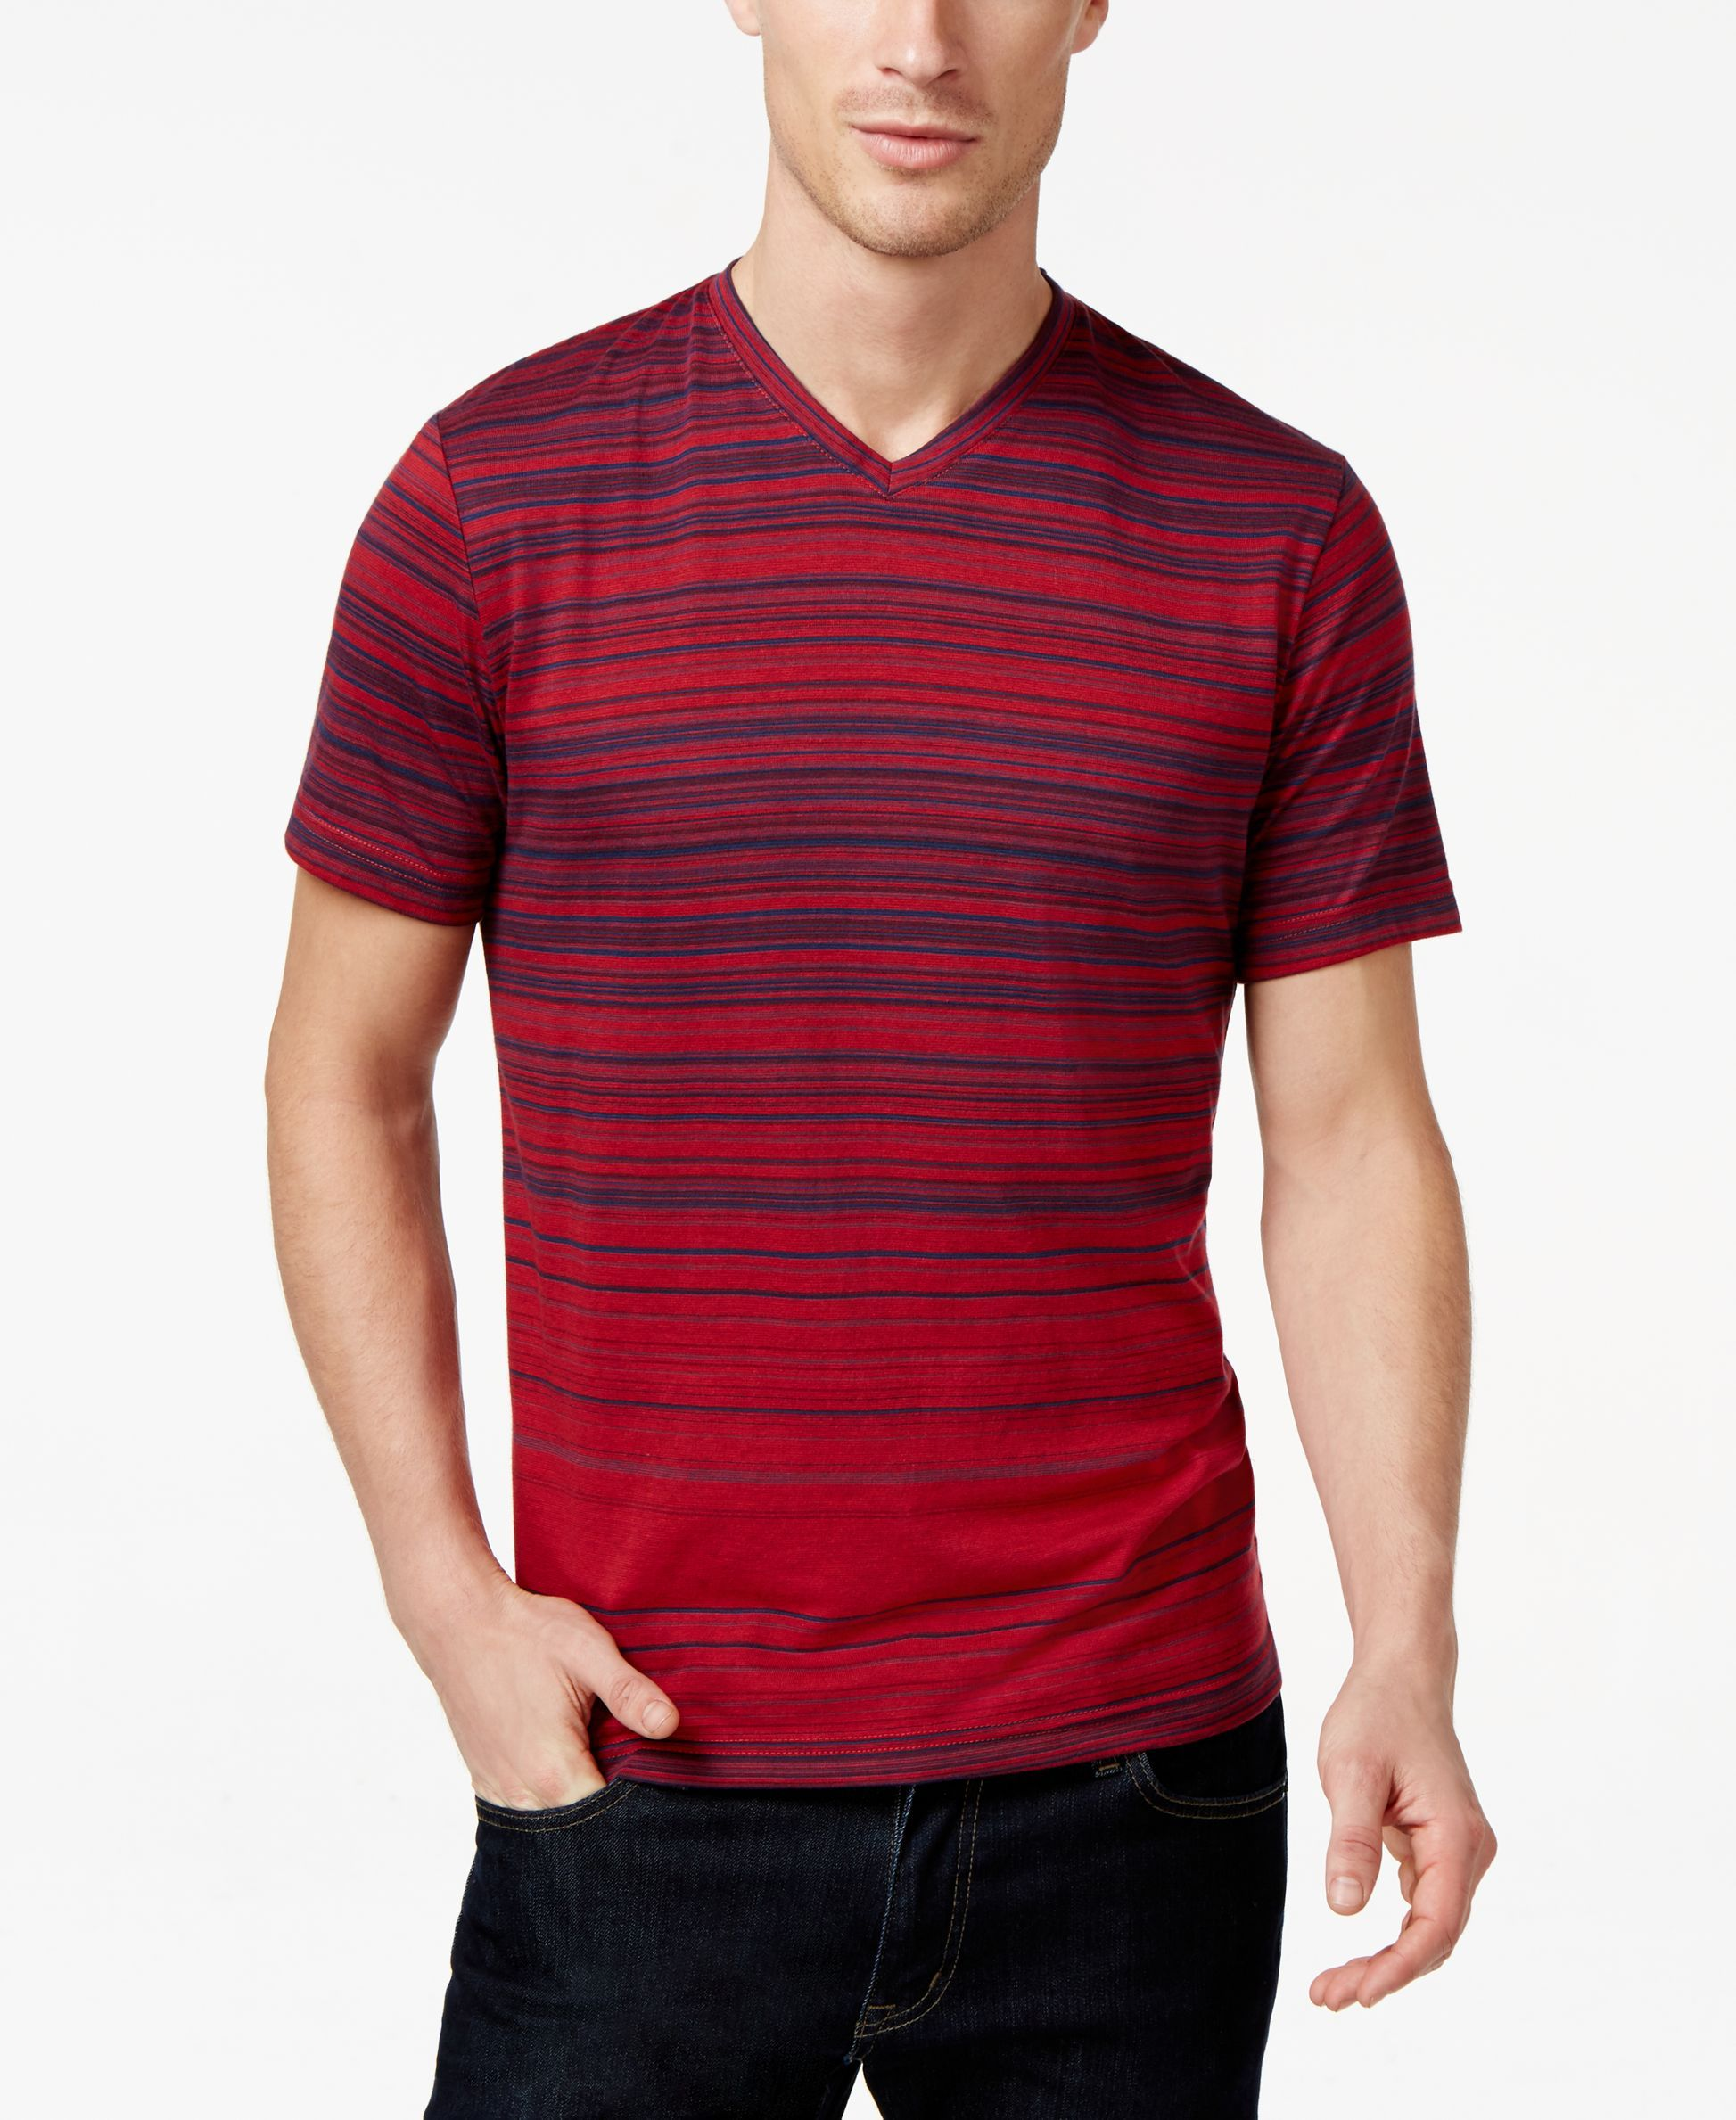 a0dc8e0bb5d4 Alfani Red Striped V-Neck T-Shirt, Only at Macy's | Stripes | T ...